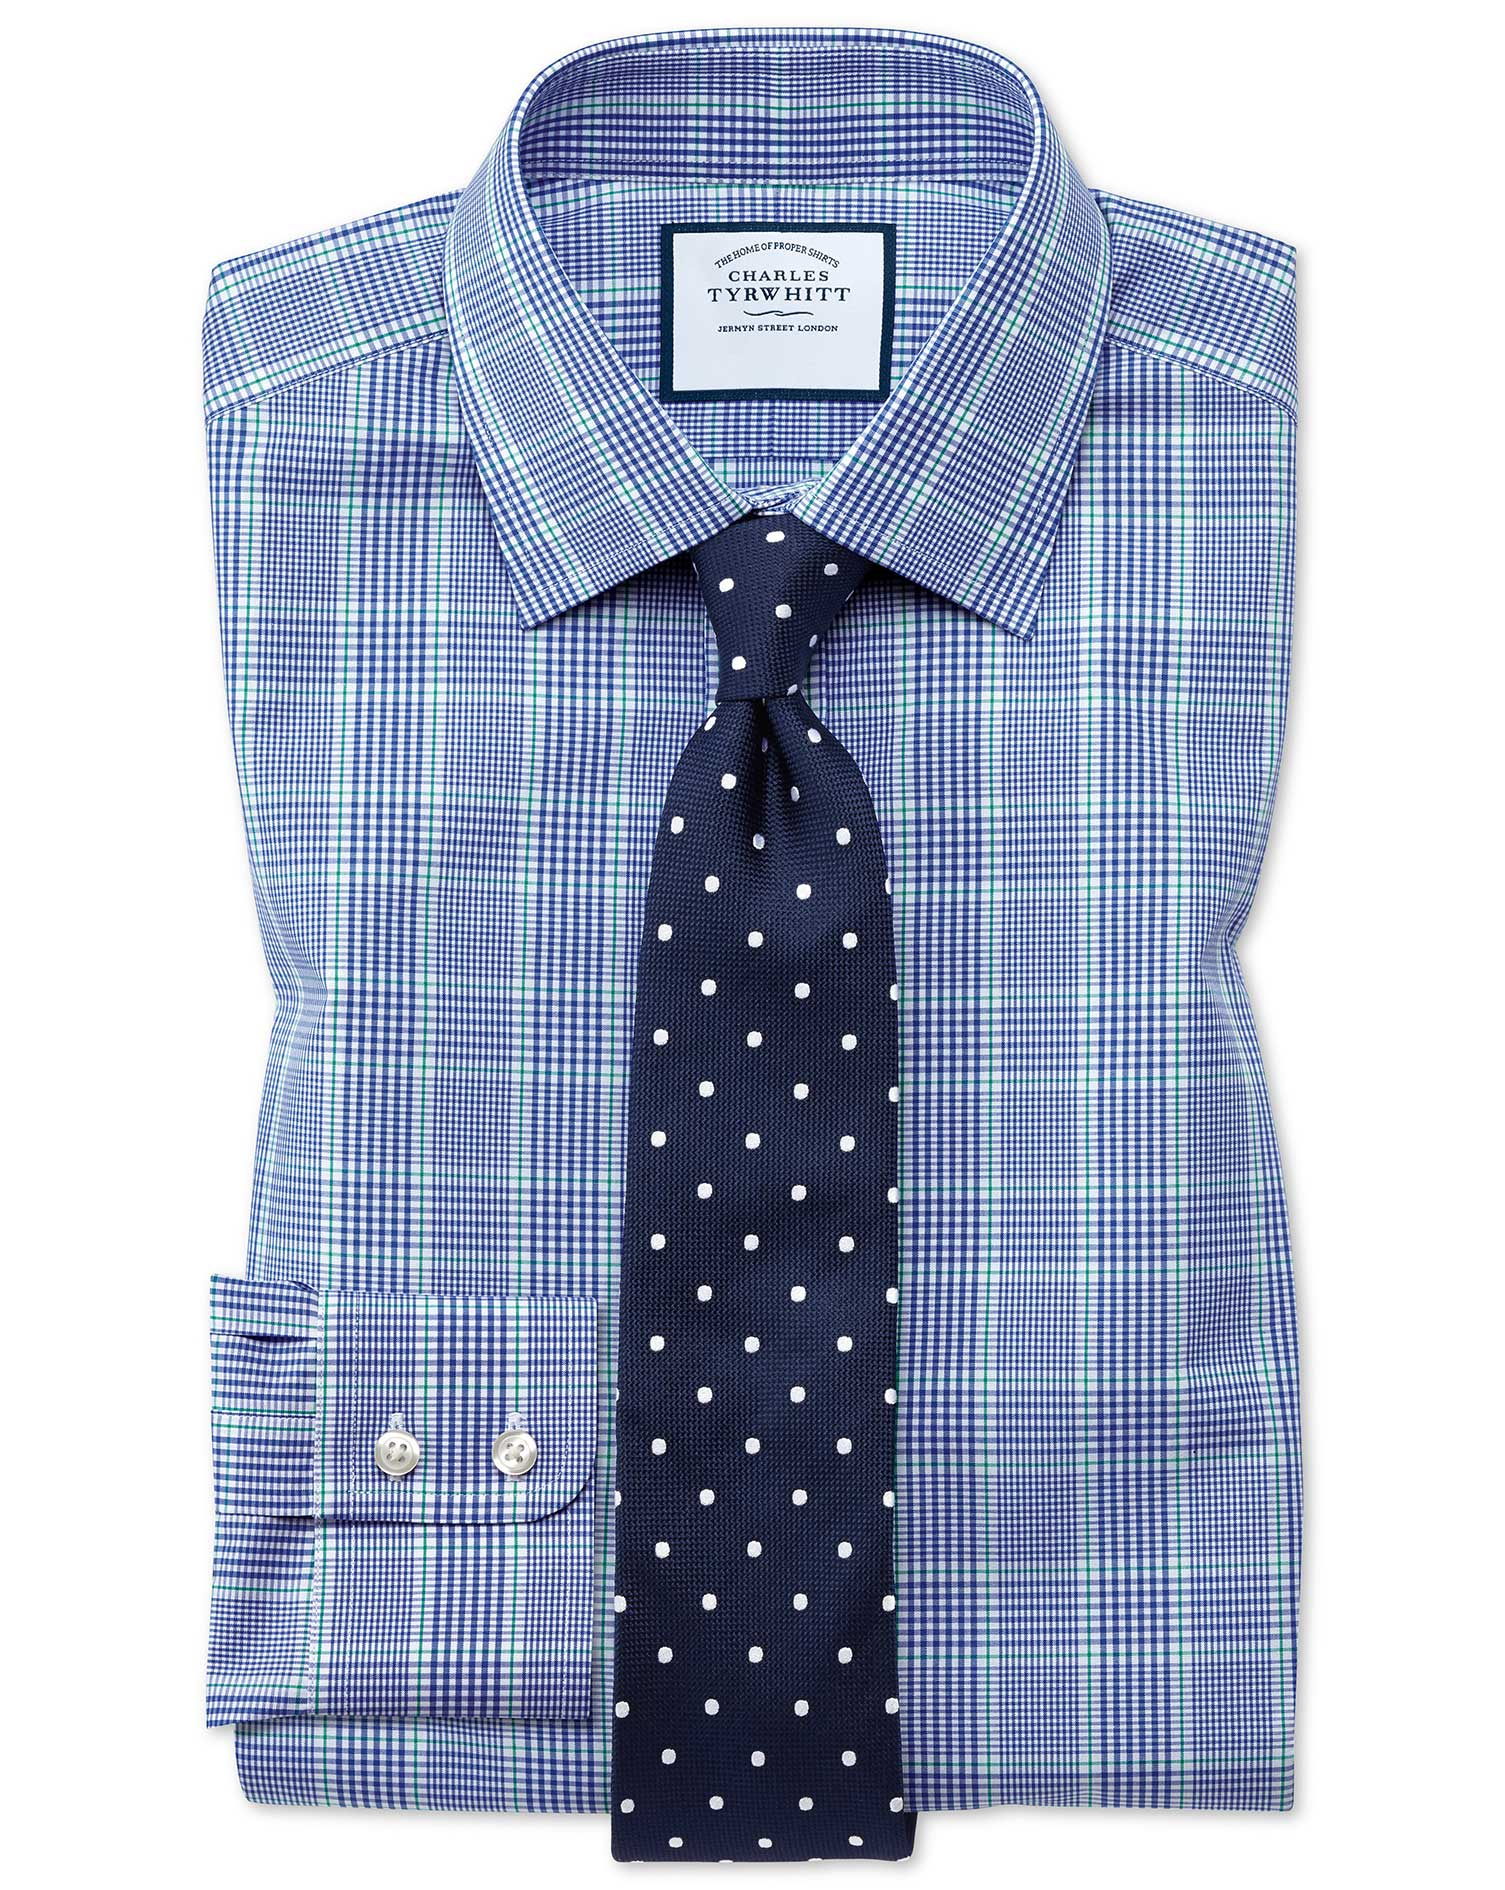 Extra Slim Fit Prince Of Wales Check Blue and Green Cotton Formal Shirt Double Cuff Size 17/35 by Ch